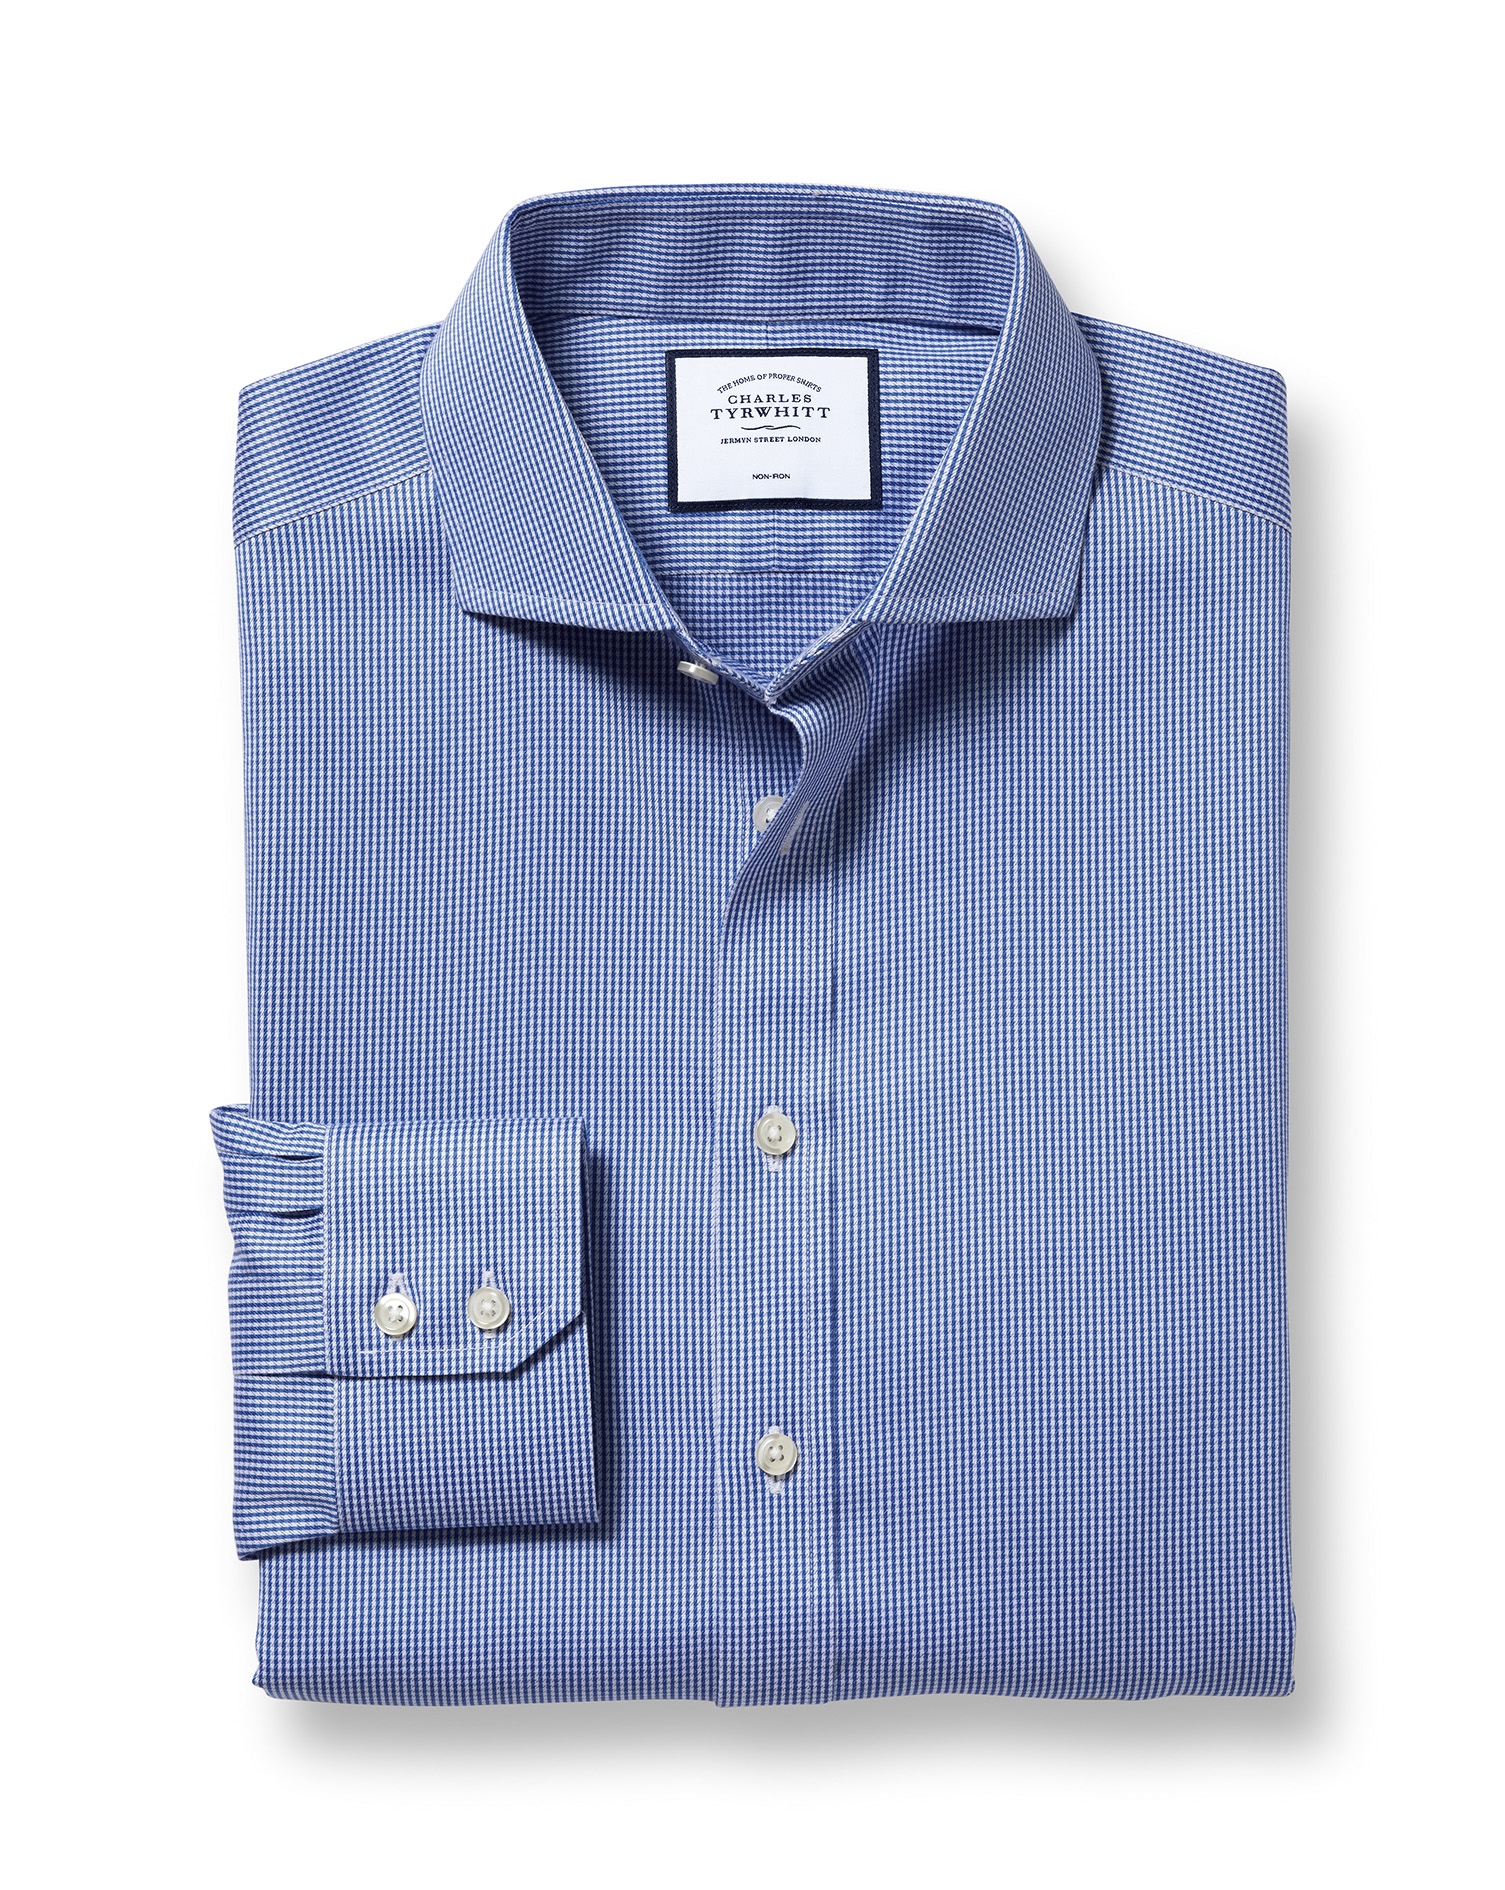 Slim Fit Cutaway Non-Iron Puppytooth Royal Blue Cotton Formal Shirt Double Cuff Size 17/36 by Charle